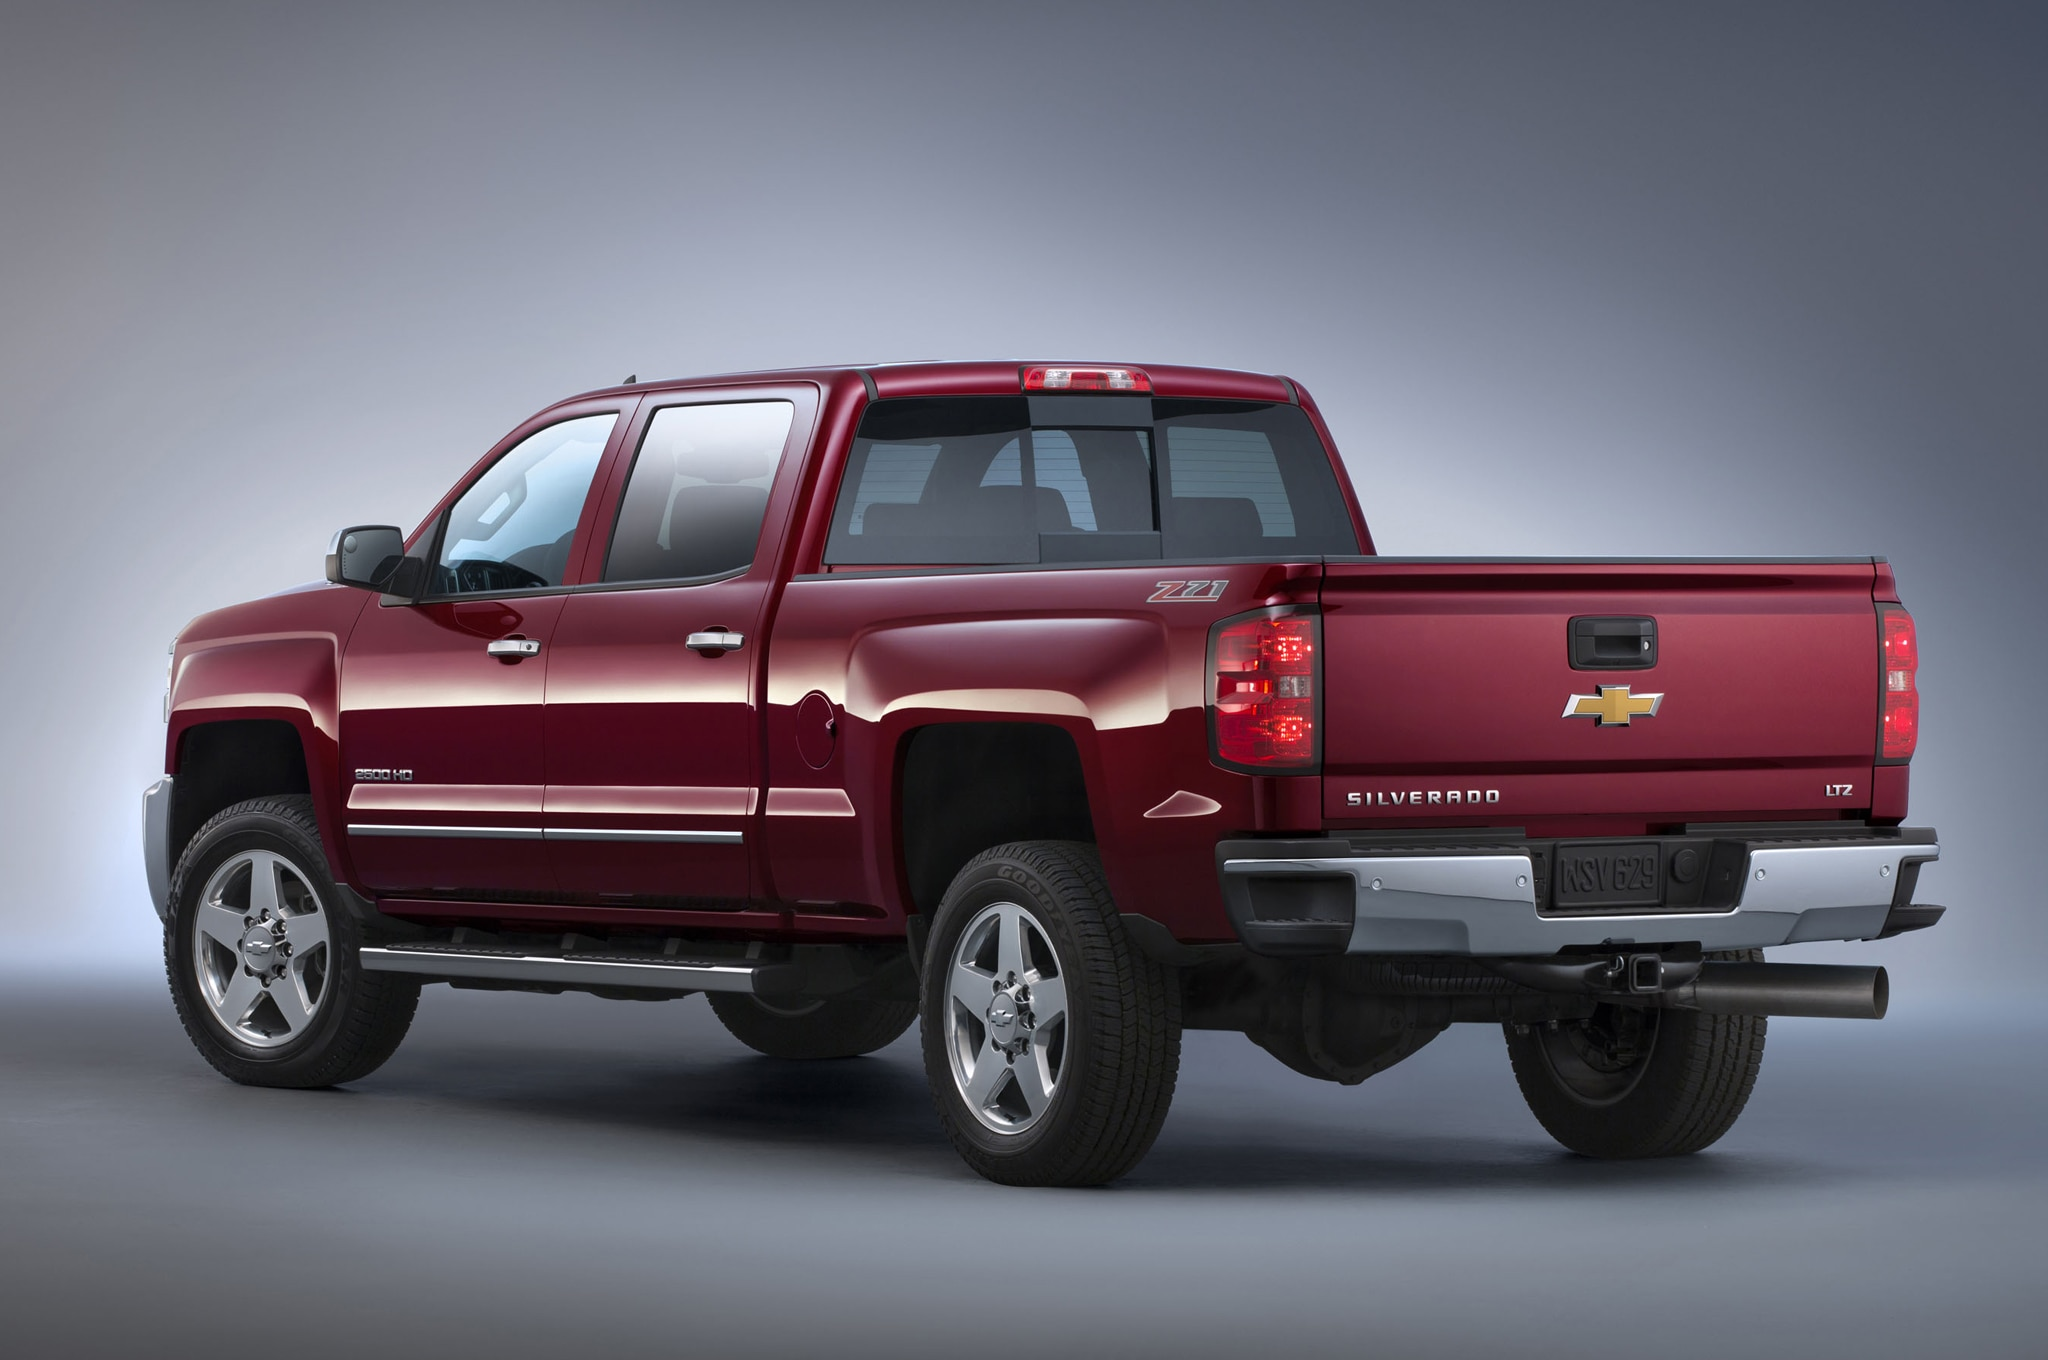 2015 chevrolet silverado and gmc sierra heavy duty first look automobile magazine. Black Bedroom Furniture Sets. Home Design Ideas